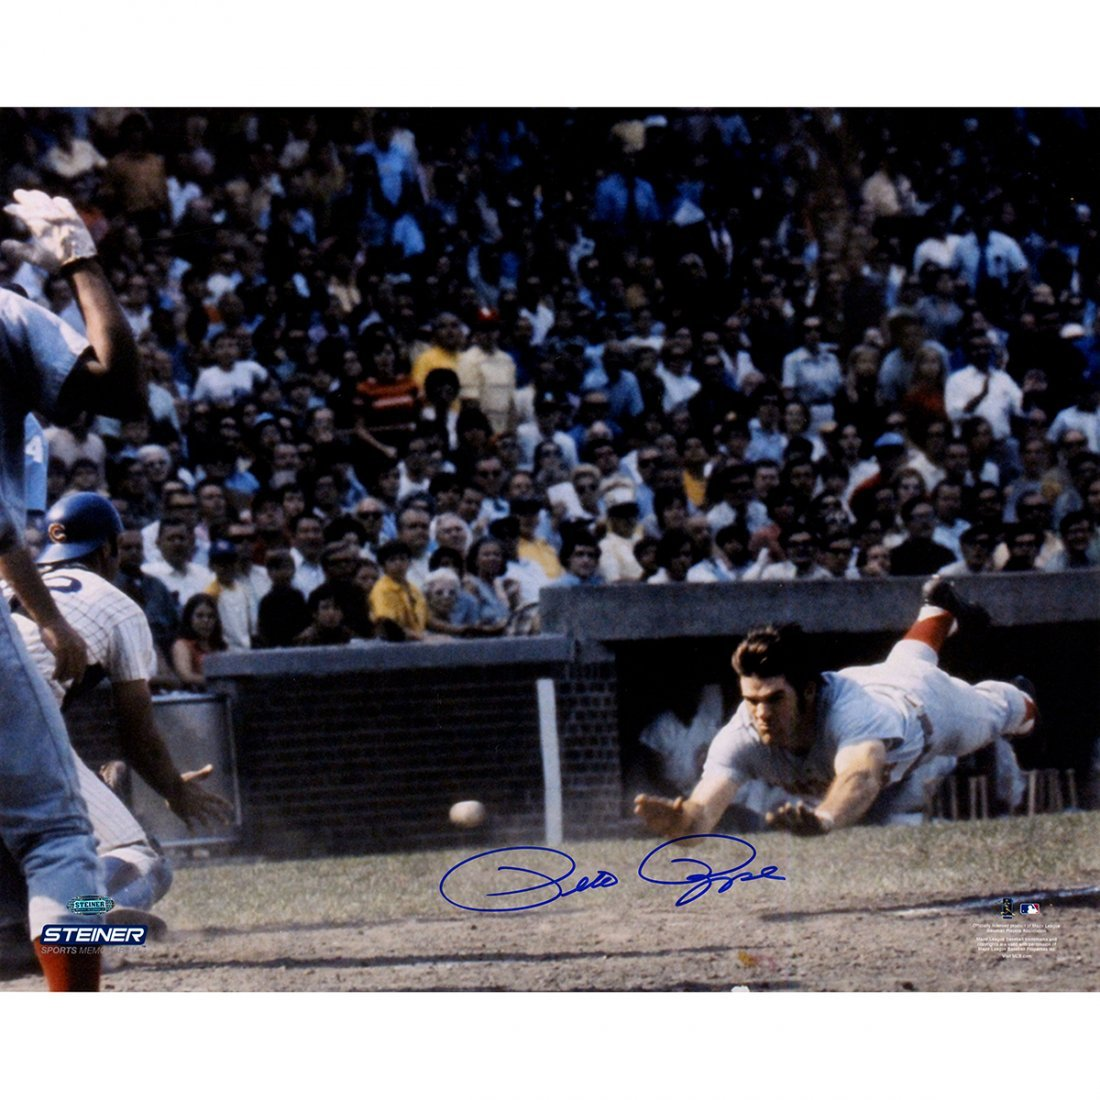 Pete Rose Signed Sliding into Home Plate 16X20 Photo